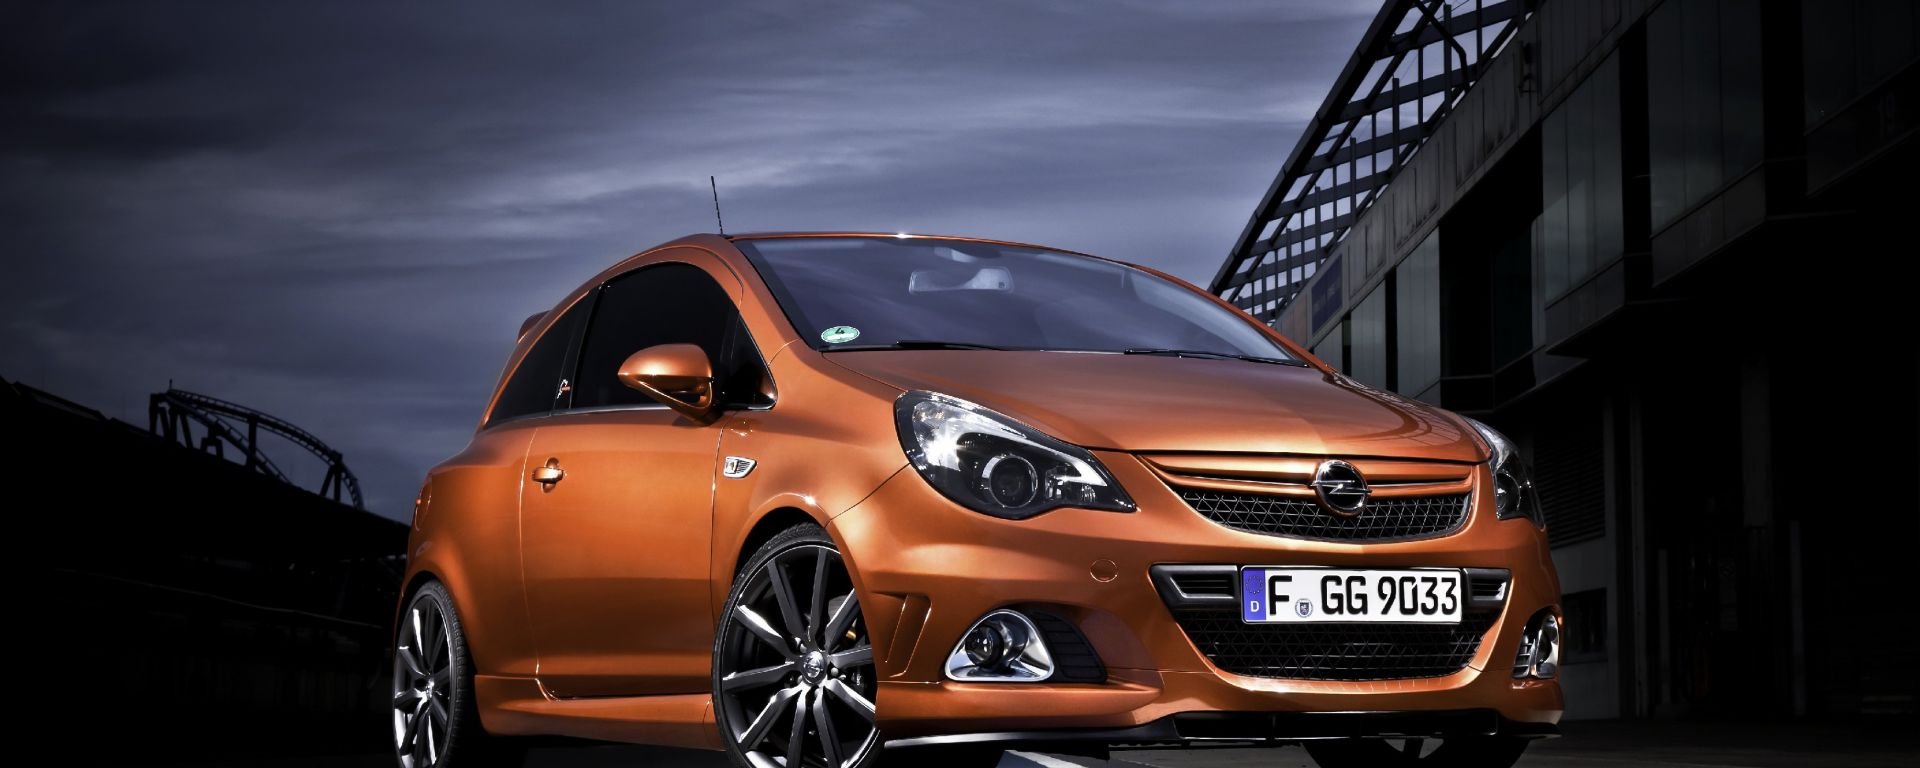 anteprima opel corsa opc n rburgring edition la nuova. Black Bedroom Furniture Sets. Home Design Ideas